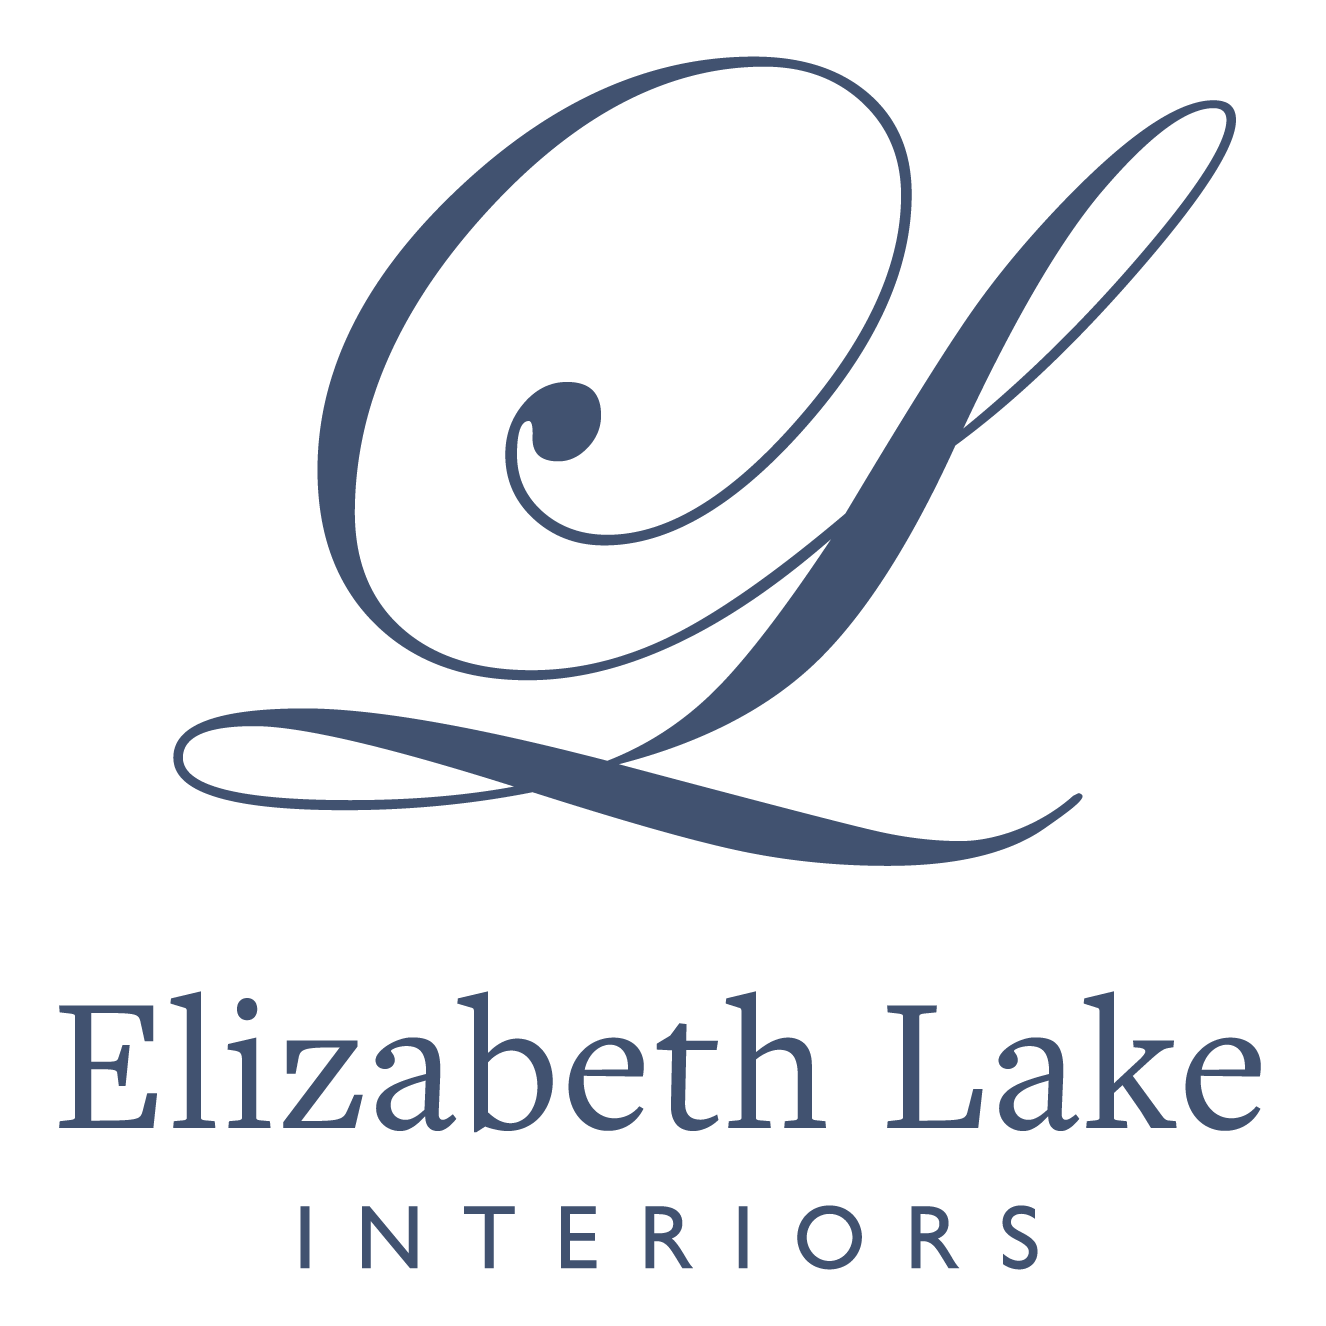 Elizabeth Lake Interiors